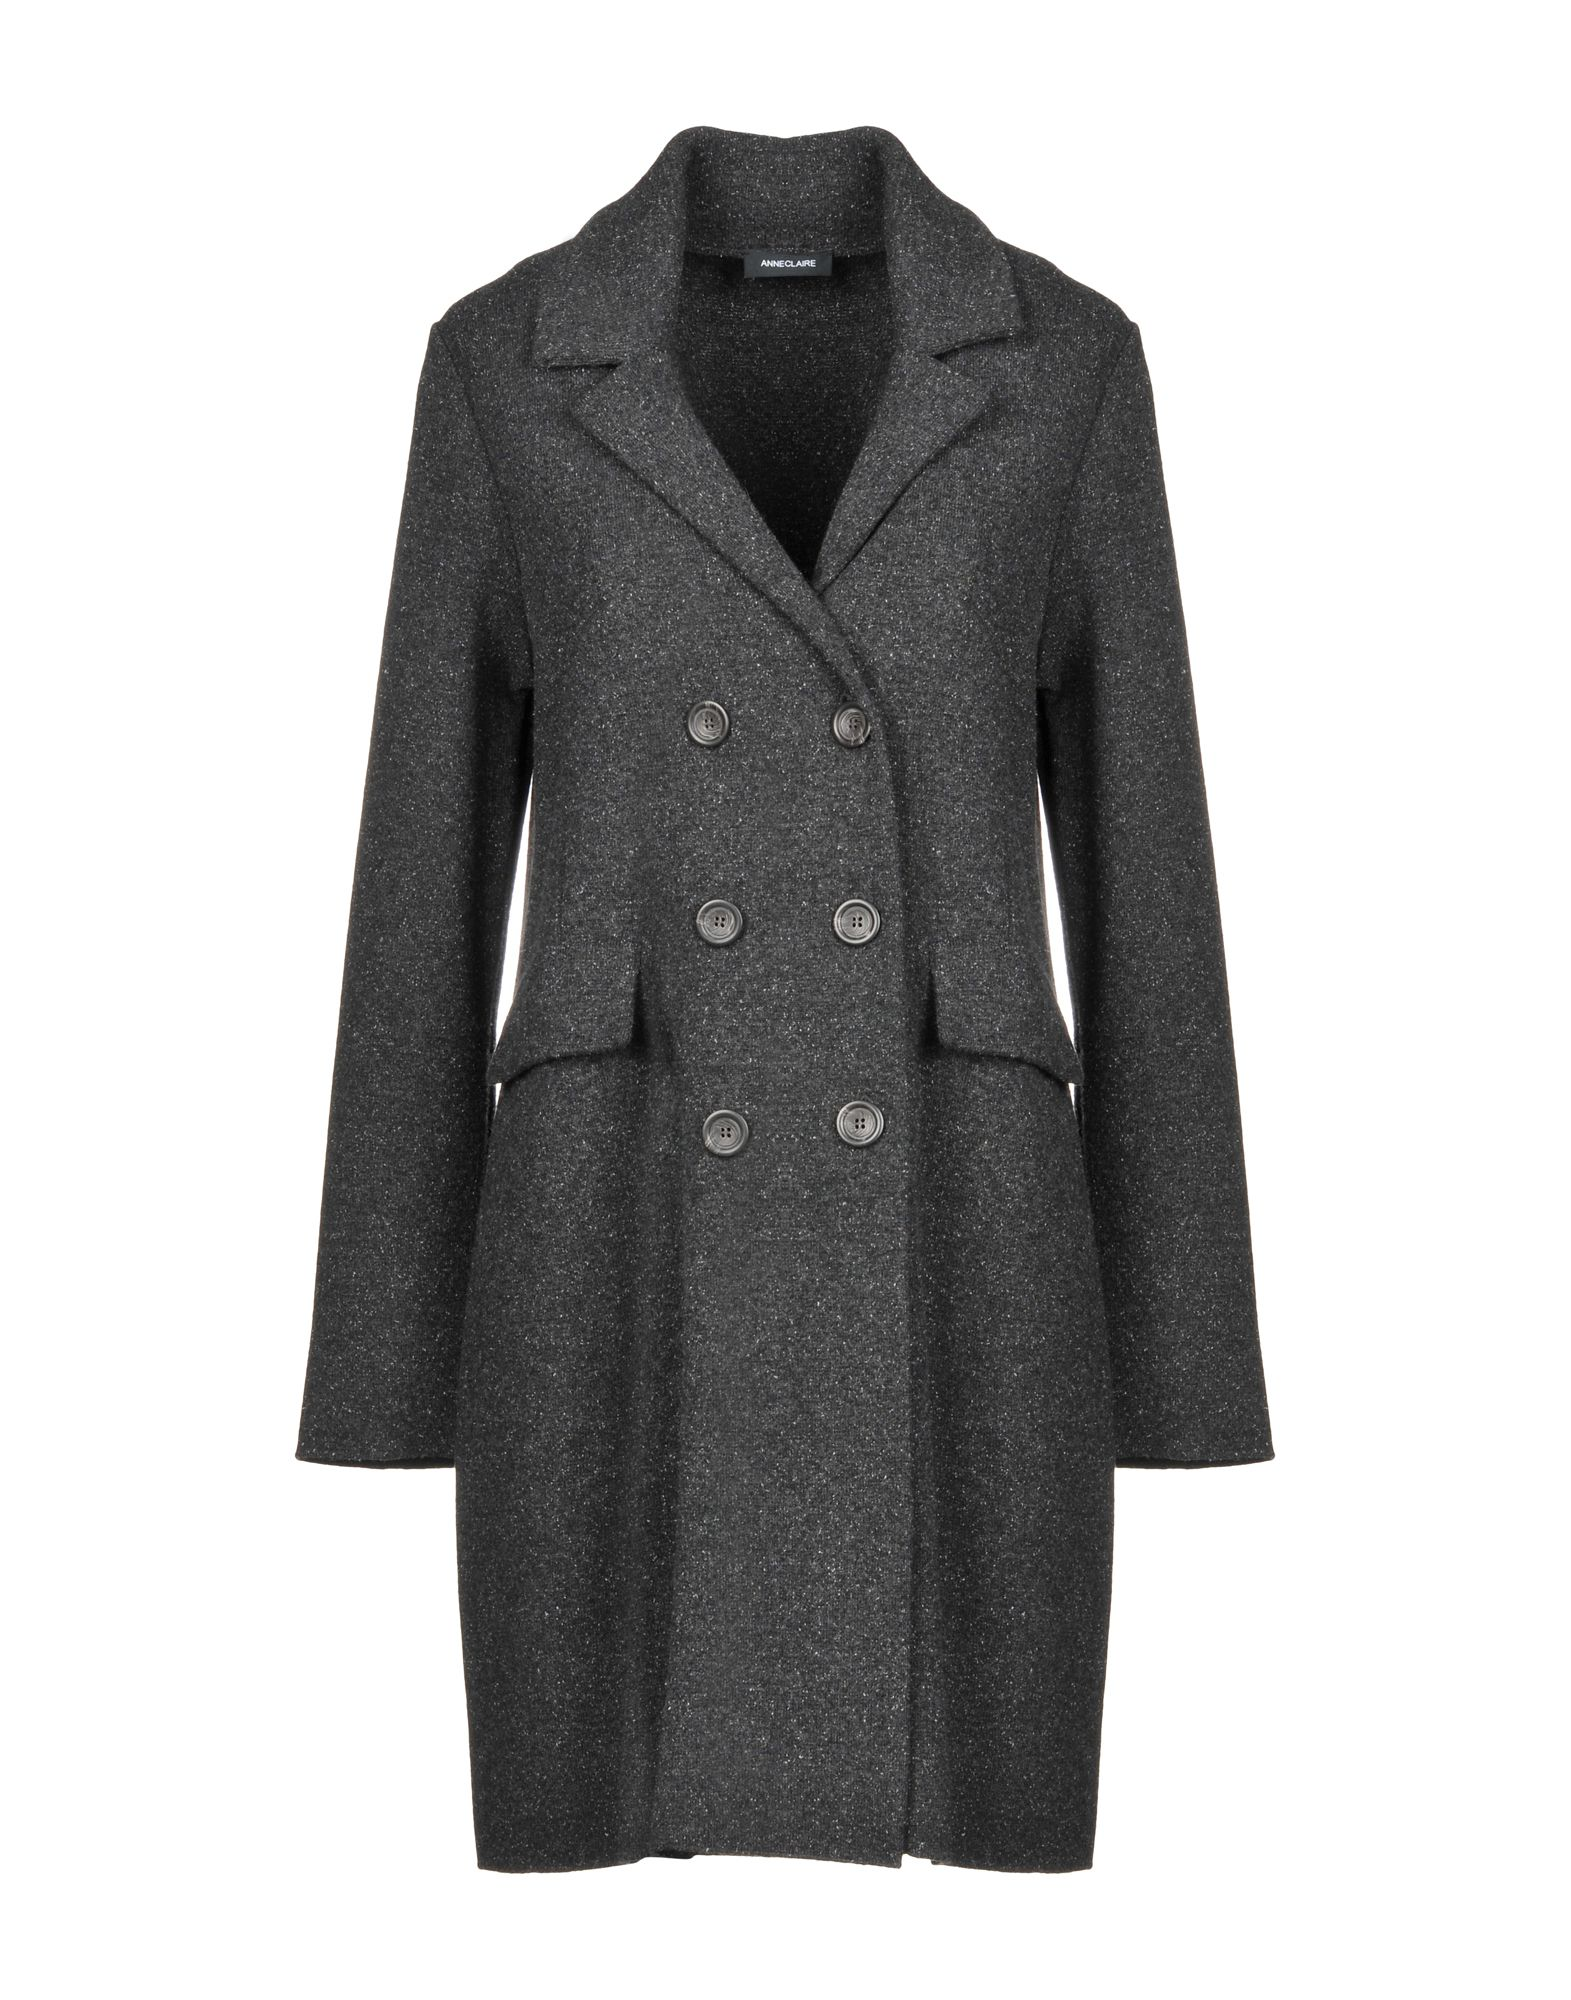 ANNECLAIRE Coat in Lead